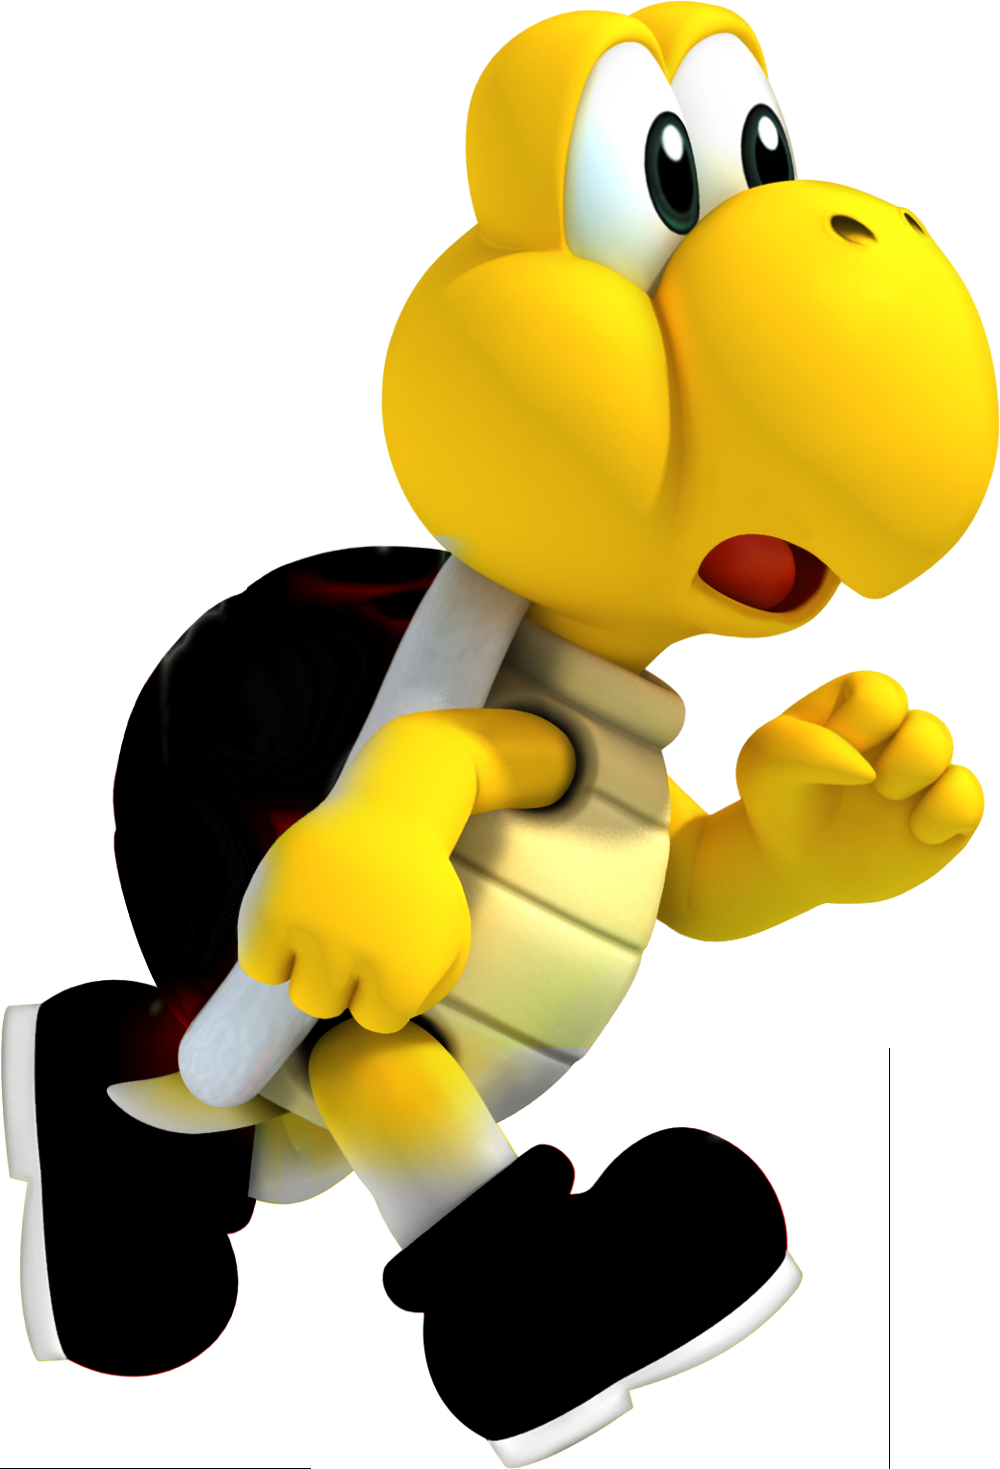 Image Bomb Koopa Png Fantendo The Video Game Fanon Wiki